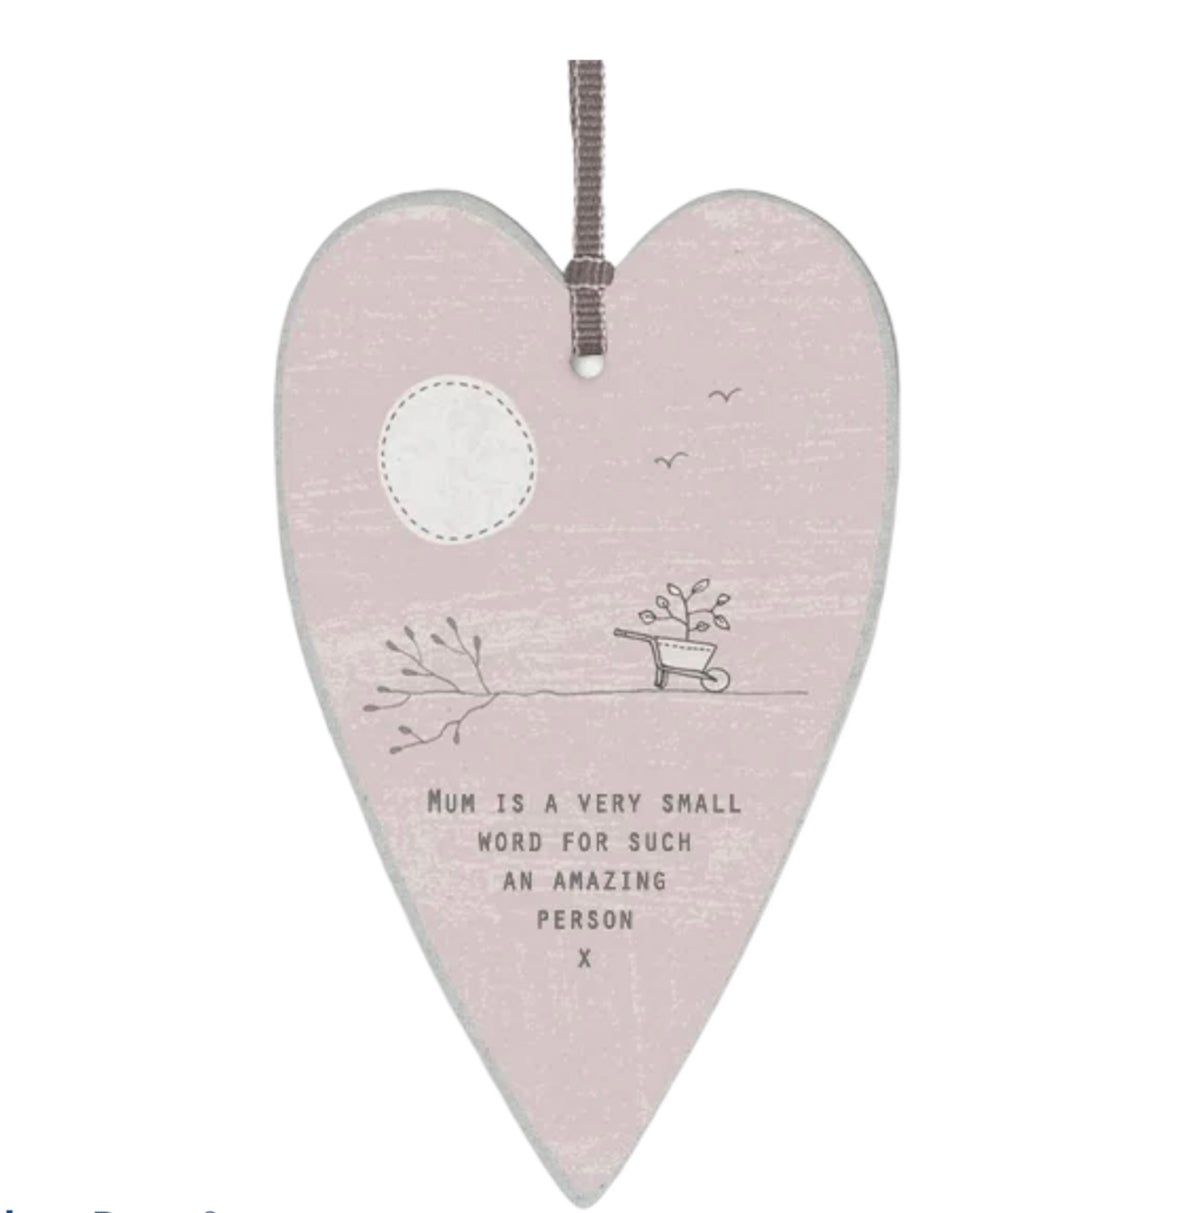 Image of East of India Heart Tag Mum is a very small word